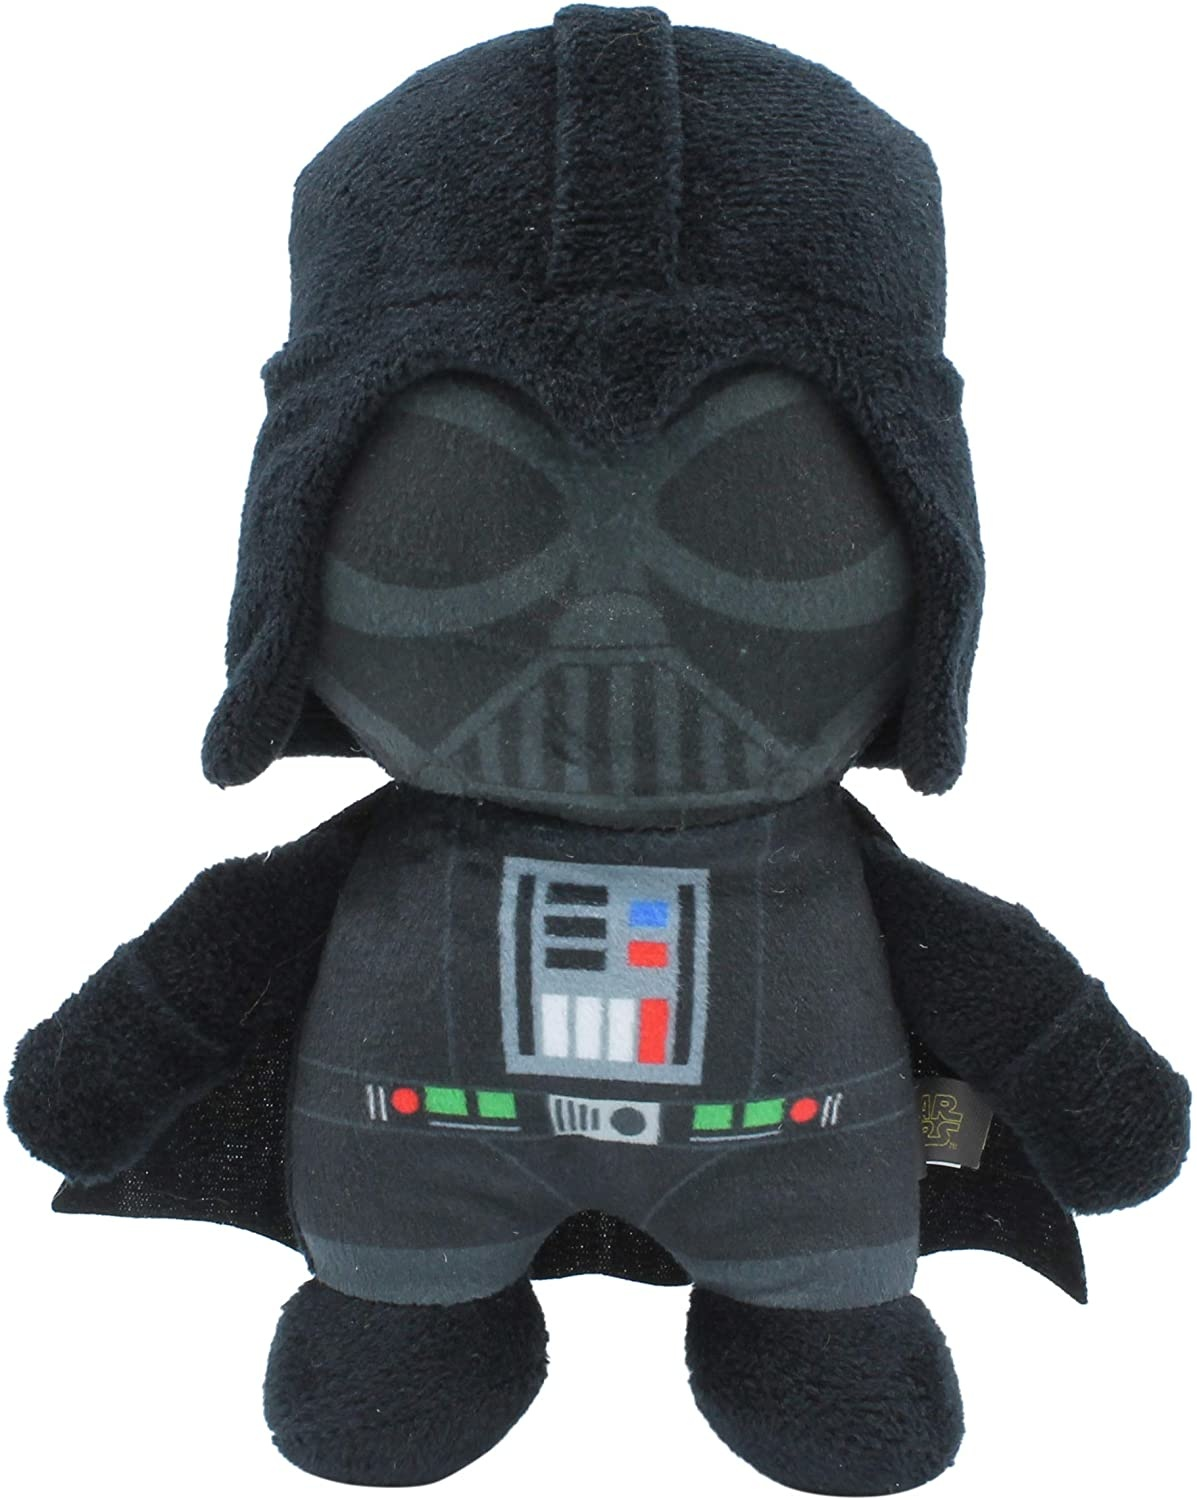 Fetch For Pets Star Wars Darth Vader Plush Figure